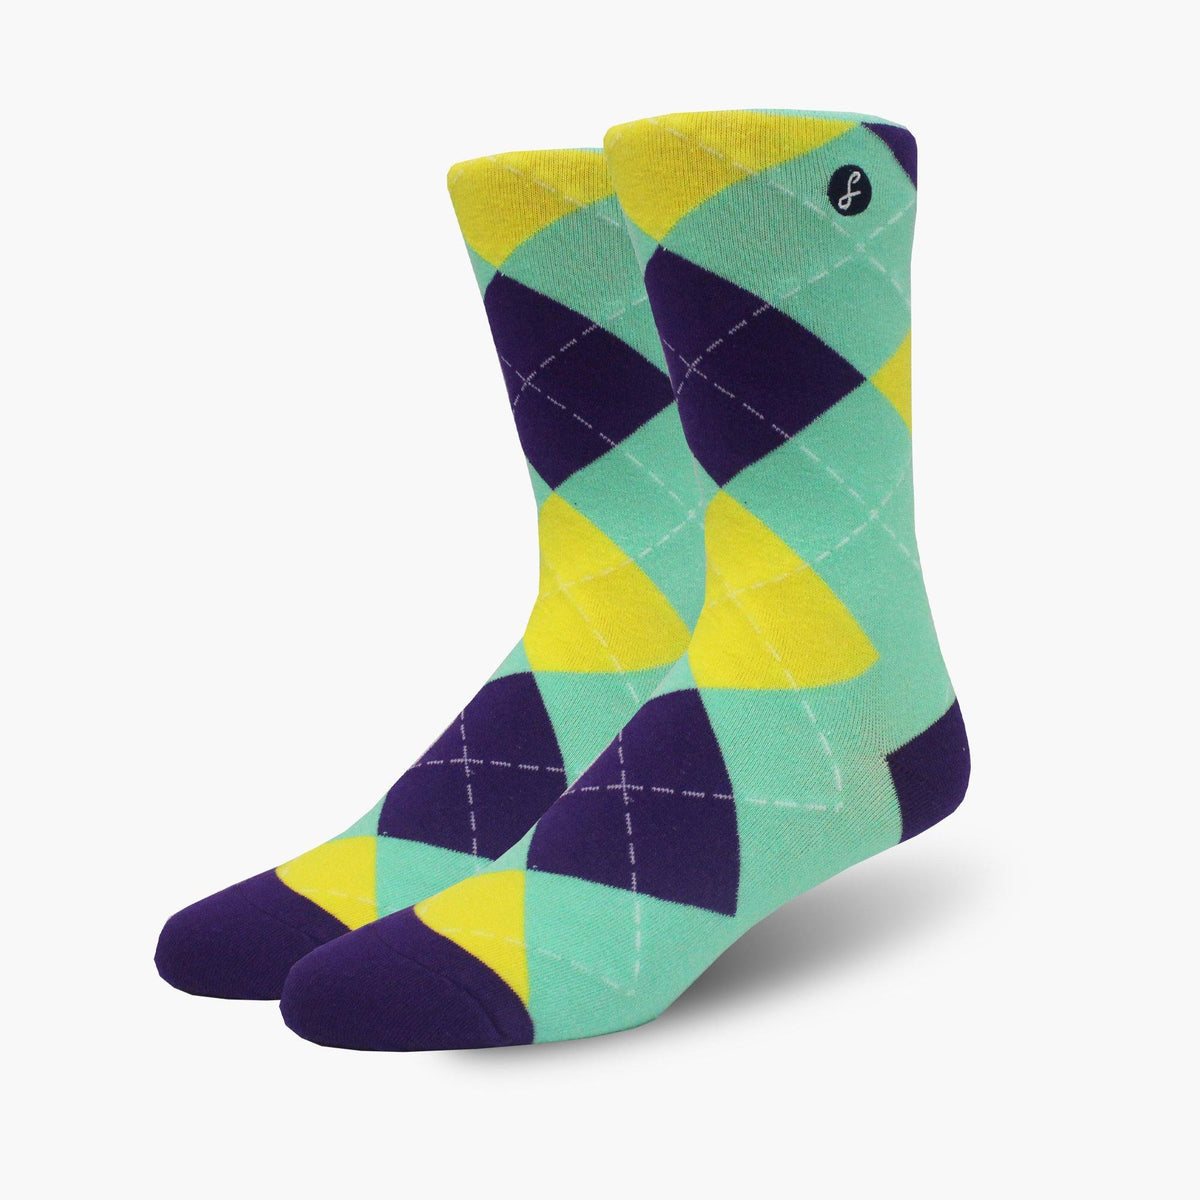 Teal Argyle Crew Length Combed Cotton Swanky Socks - SwankySocks